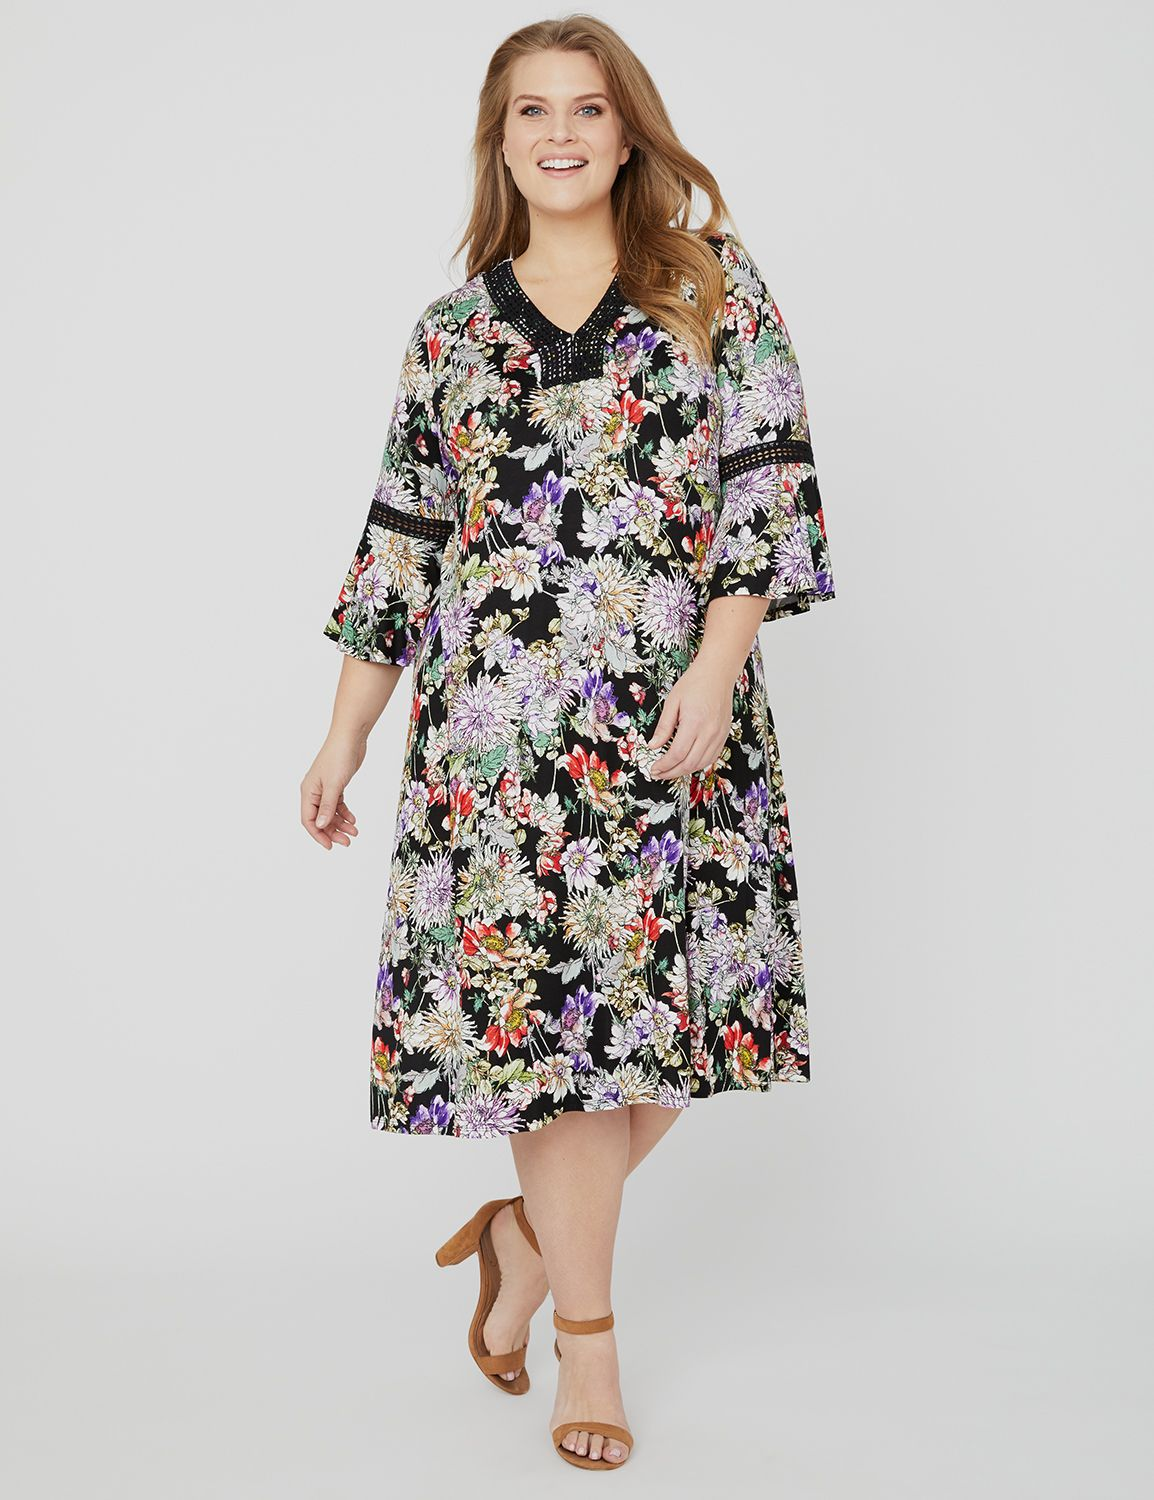 Floral Meadow Dress 1092650 Spense Floral Print Dress w MP-300102320